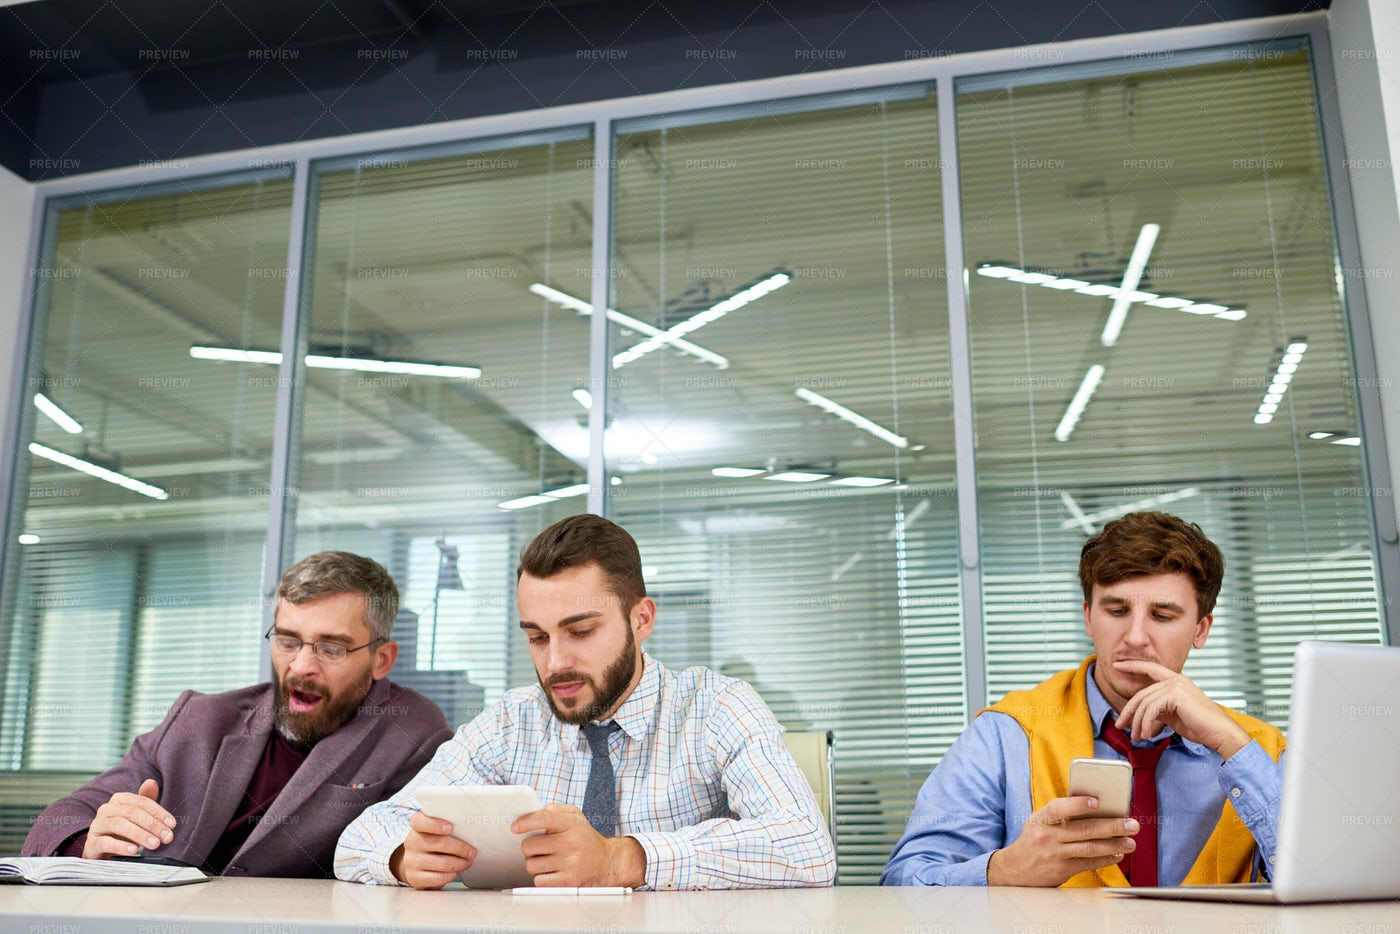 Business People Waiting For Meeting: Stock Photos